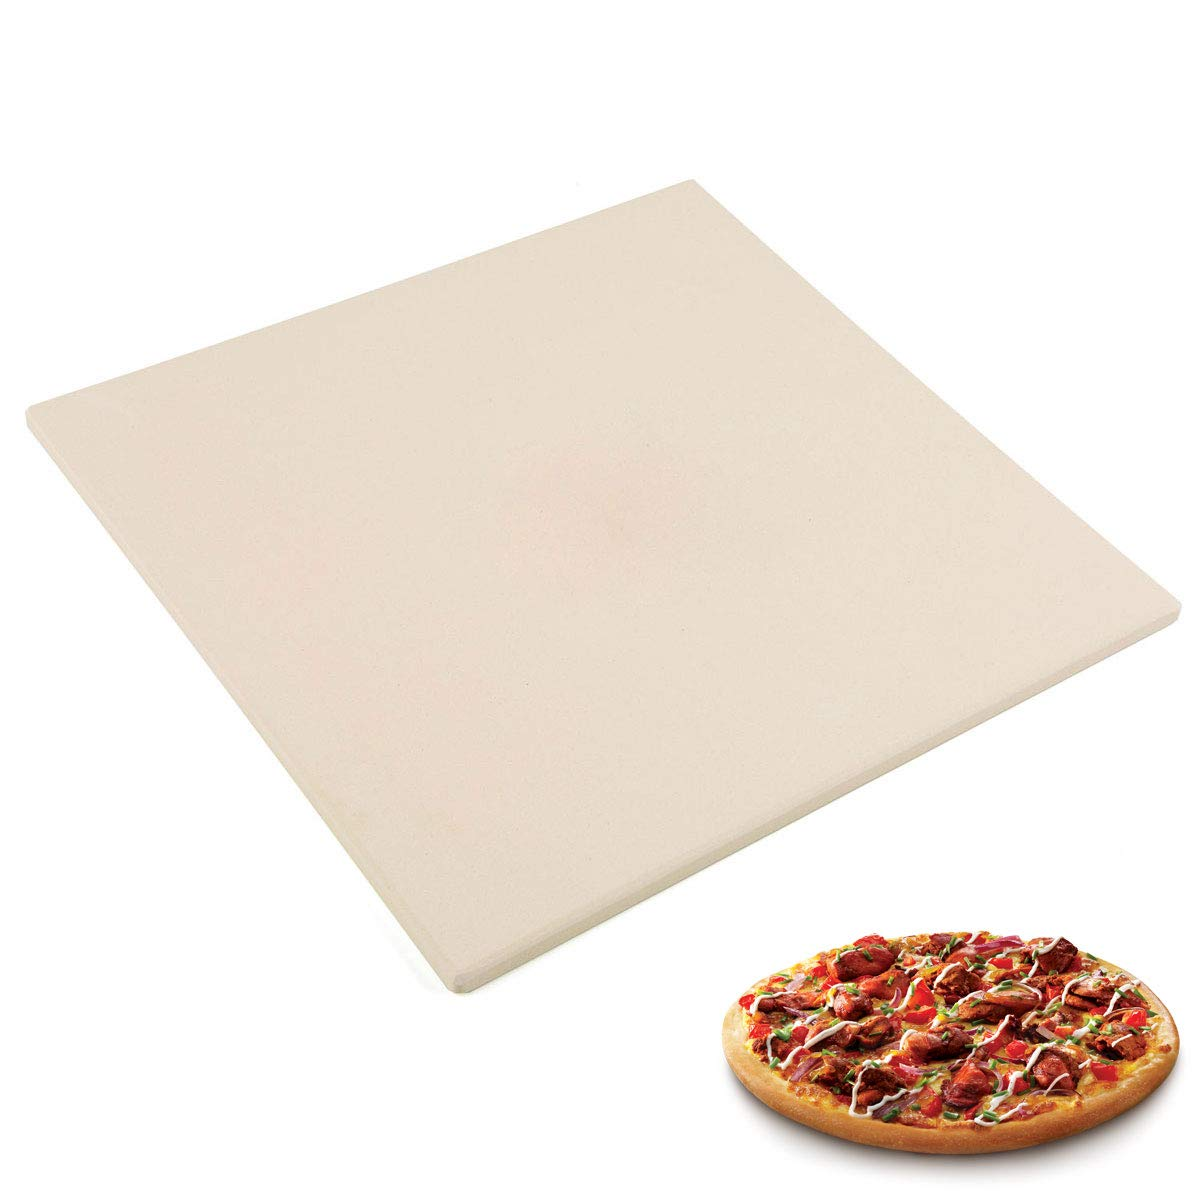 "Waykea 10"" x 10.4"" Pizza Stone for Toaster Oven 